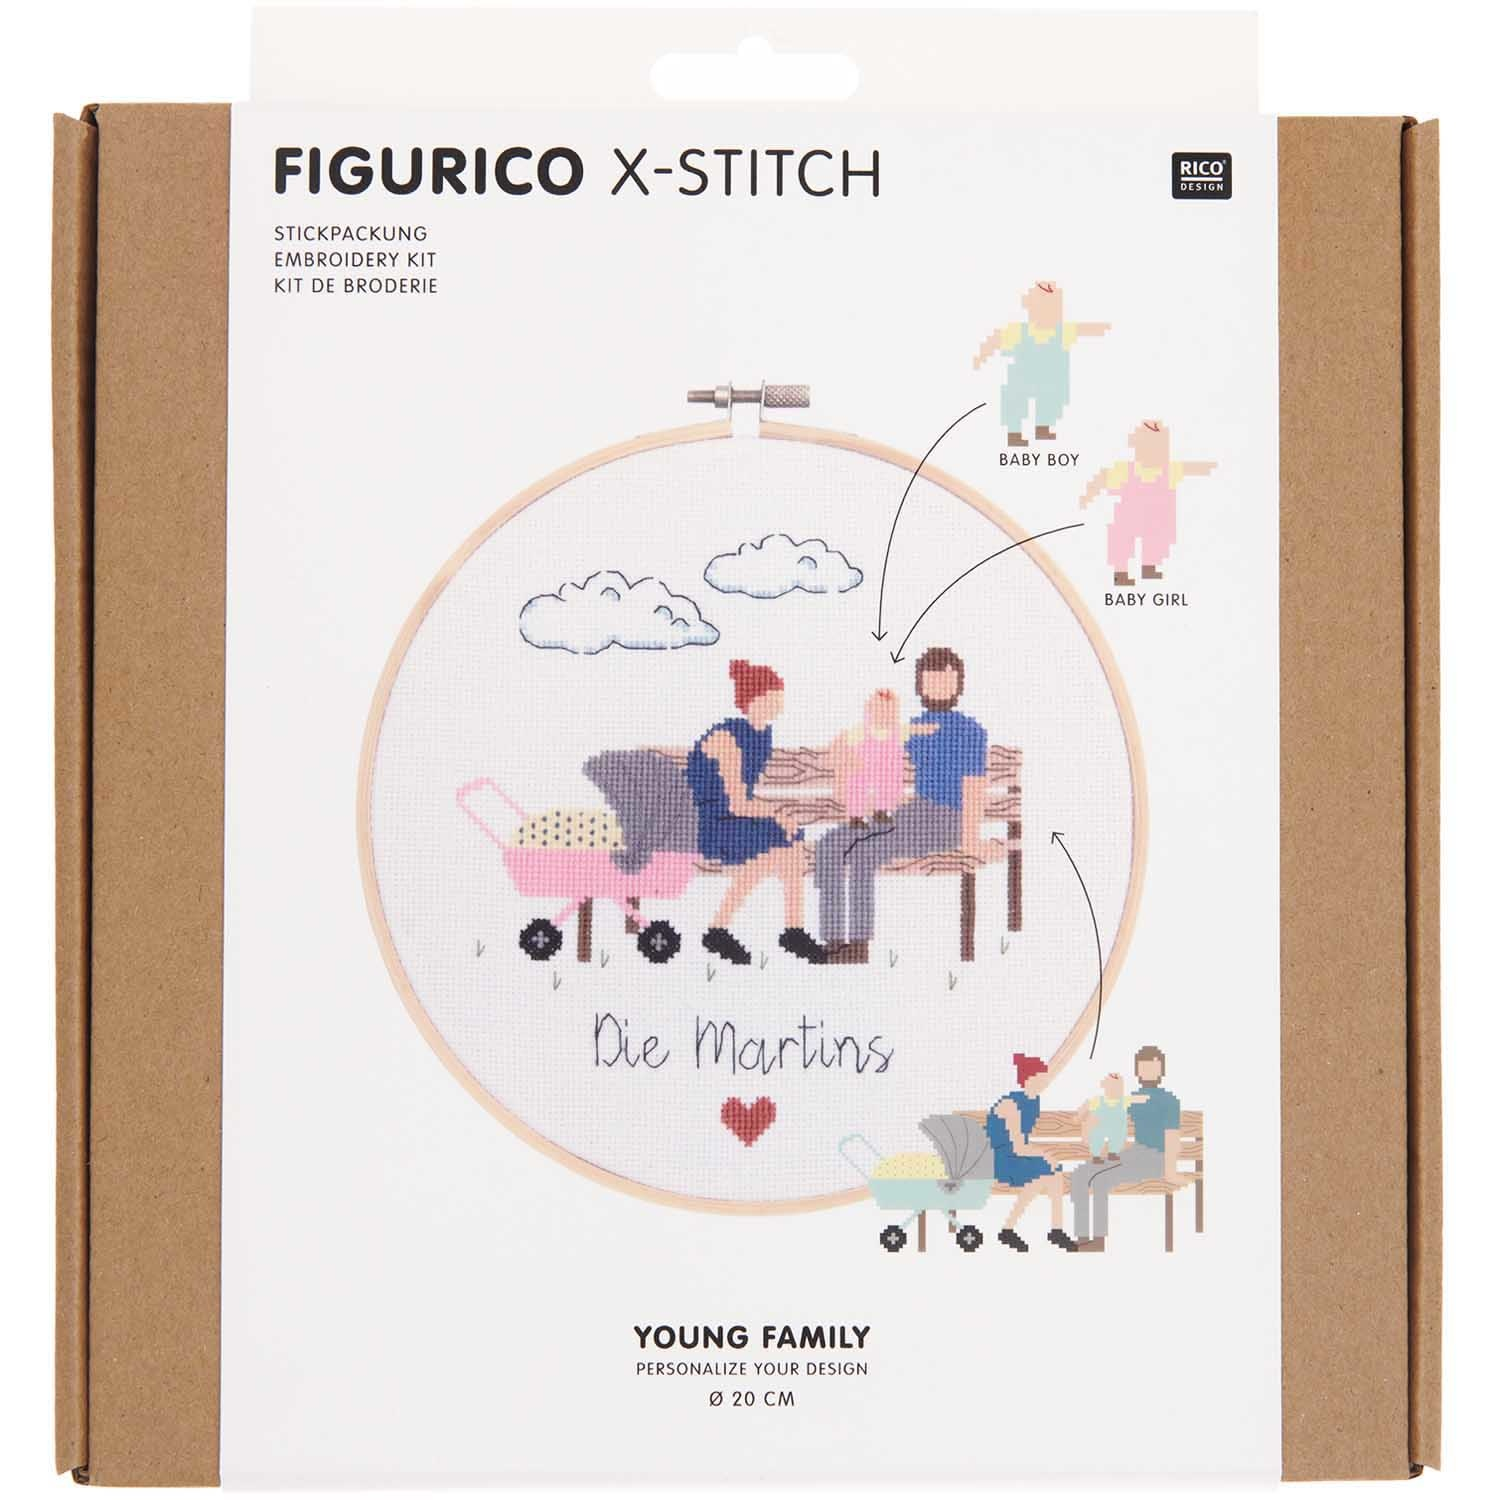 Rico NAY Embroidery kit Figurico Young Family, picture Ø 20 cm, counted cross stitch